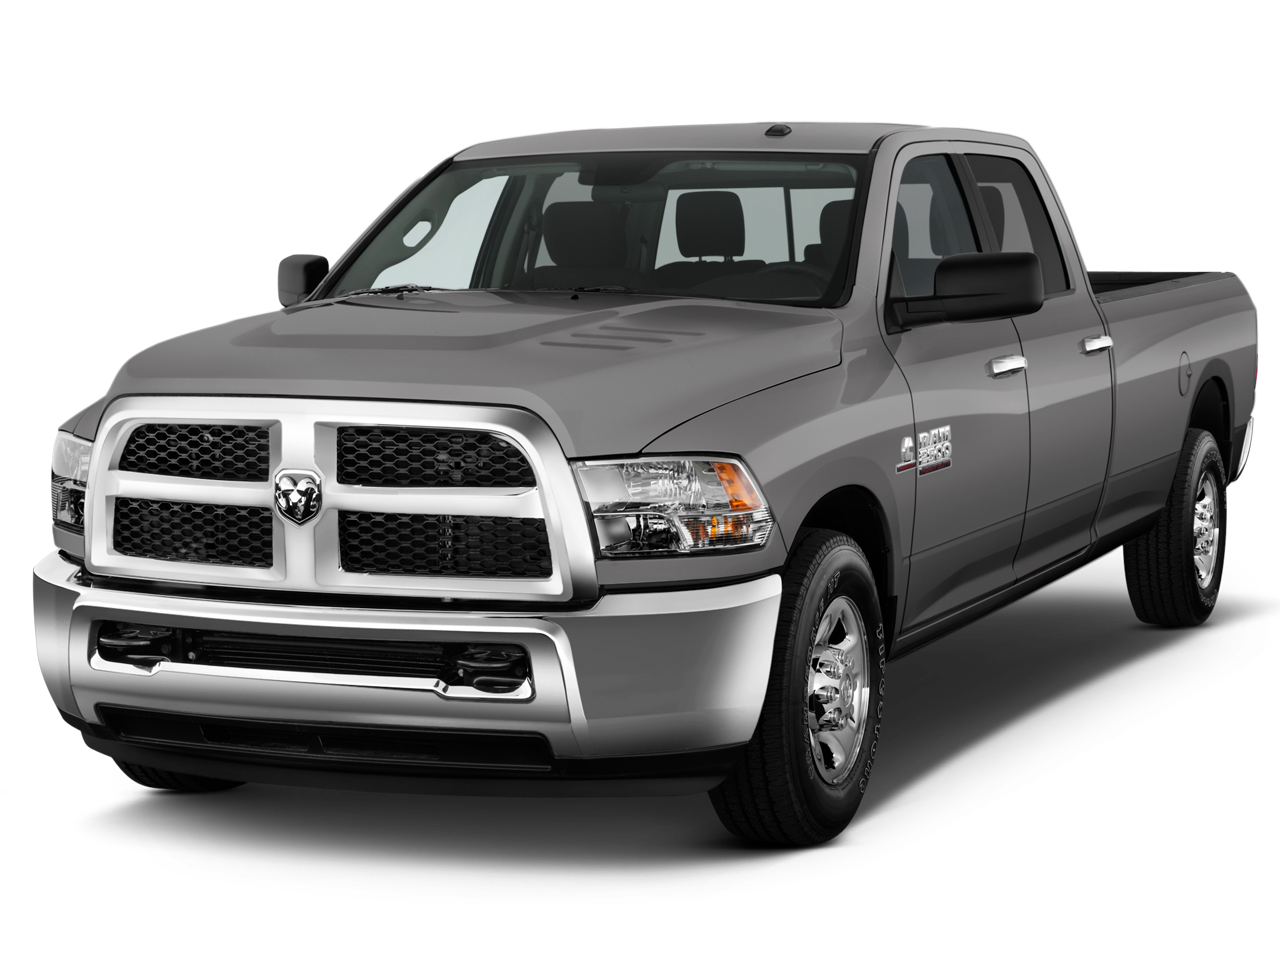 new 2017 ram 3500 laramie longhorn near pryor ok roberts dodge chrysler jeep ram. Black Bedroom Furniture Sets. Home Design Ideas